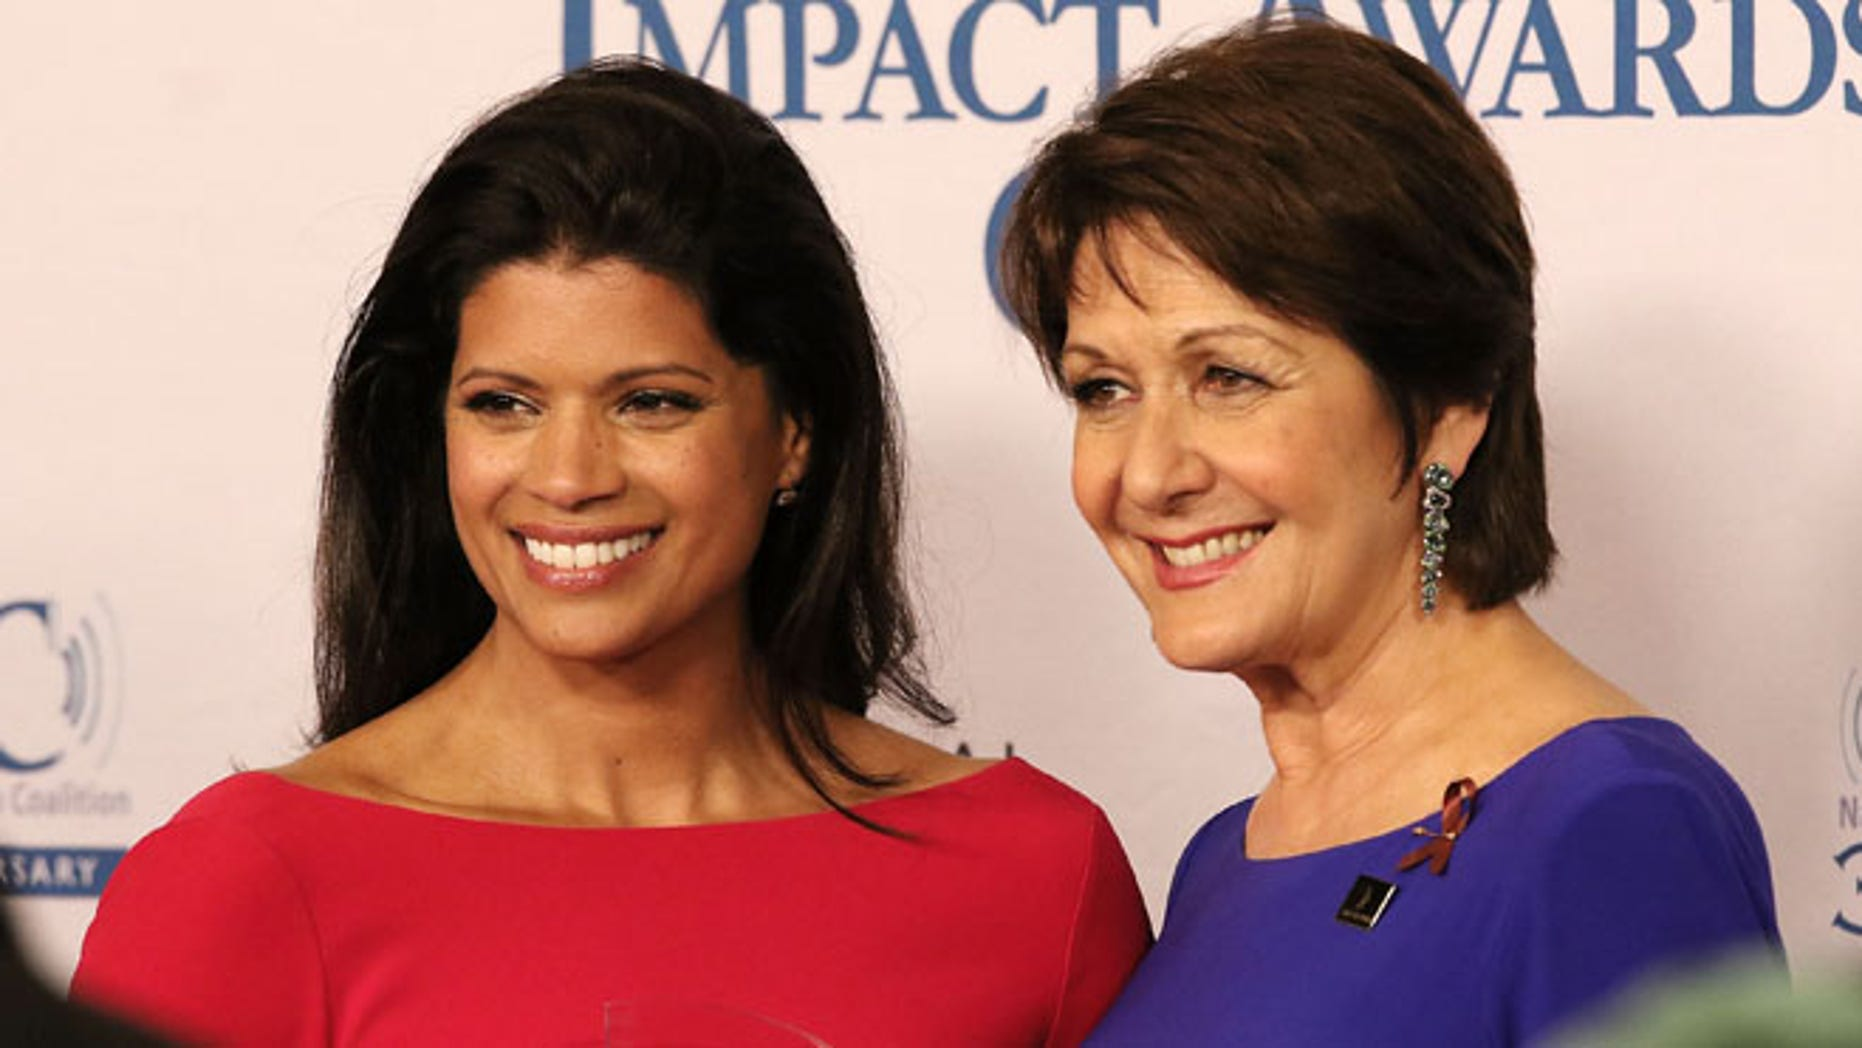 BEVERLY HILLS, CA - FEBRUARY 26:  Actresses Andrea Navedo (L) and Ivonne Coll attend the 19th Annual National Hispanic Media Coalition Impact Awards Gala at Regent Beverly Wilshire Hotel on February 26, 2016 in Beverly Hills, California.  (Photo by JC Olivera/Getty Images for National Hispanic Media Coalition)